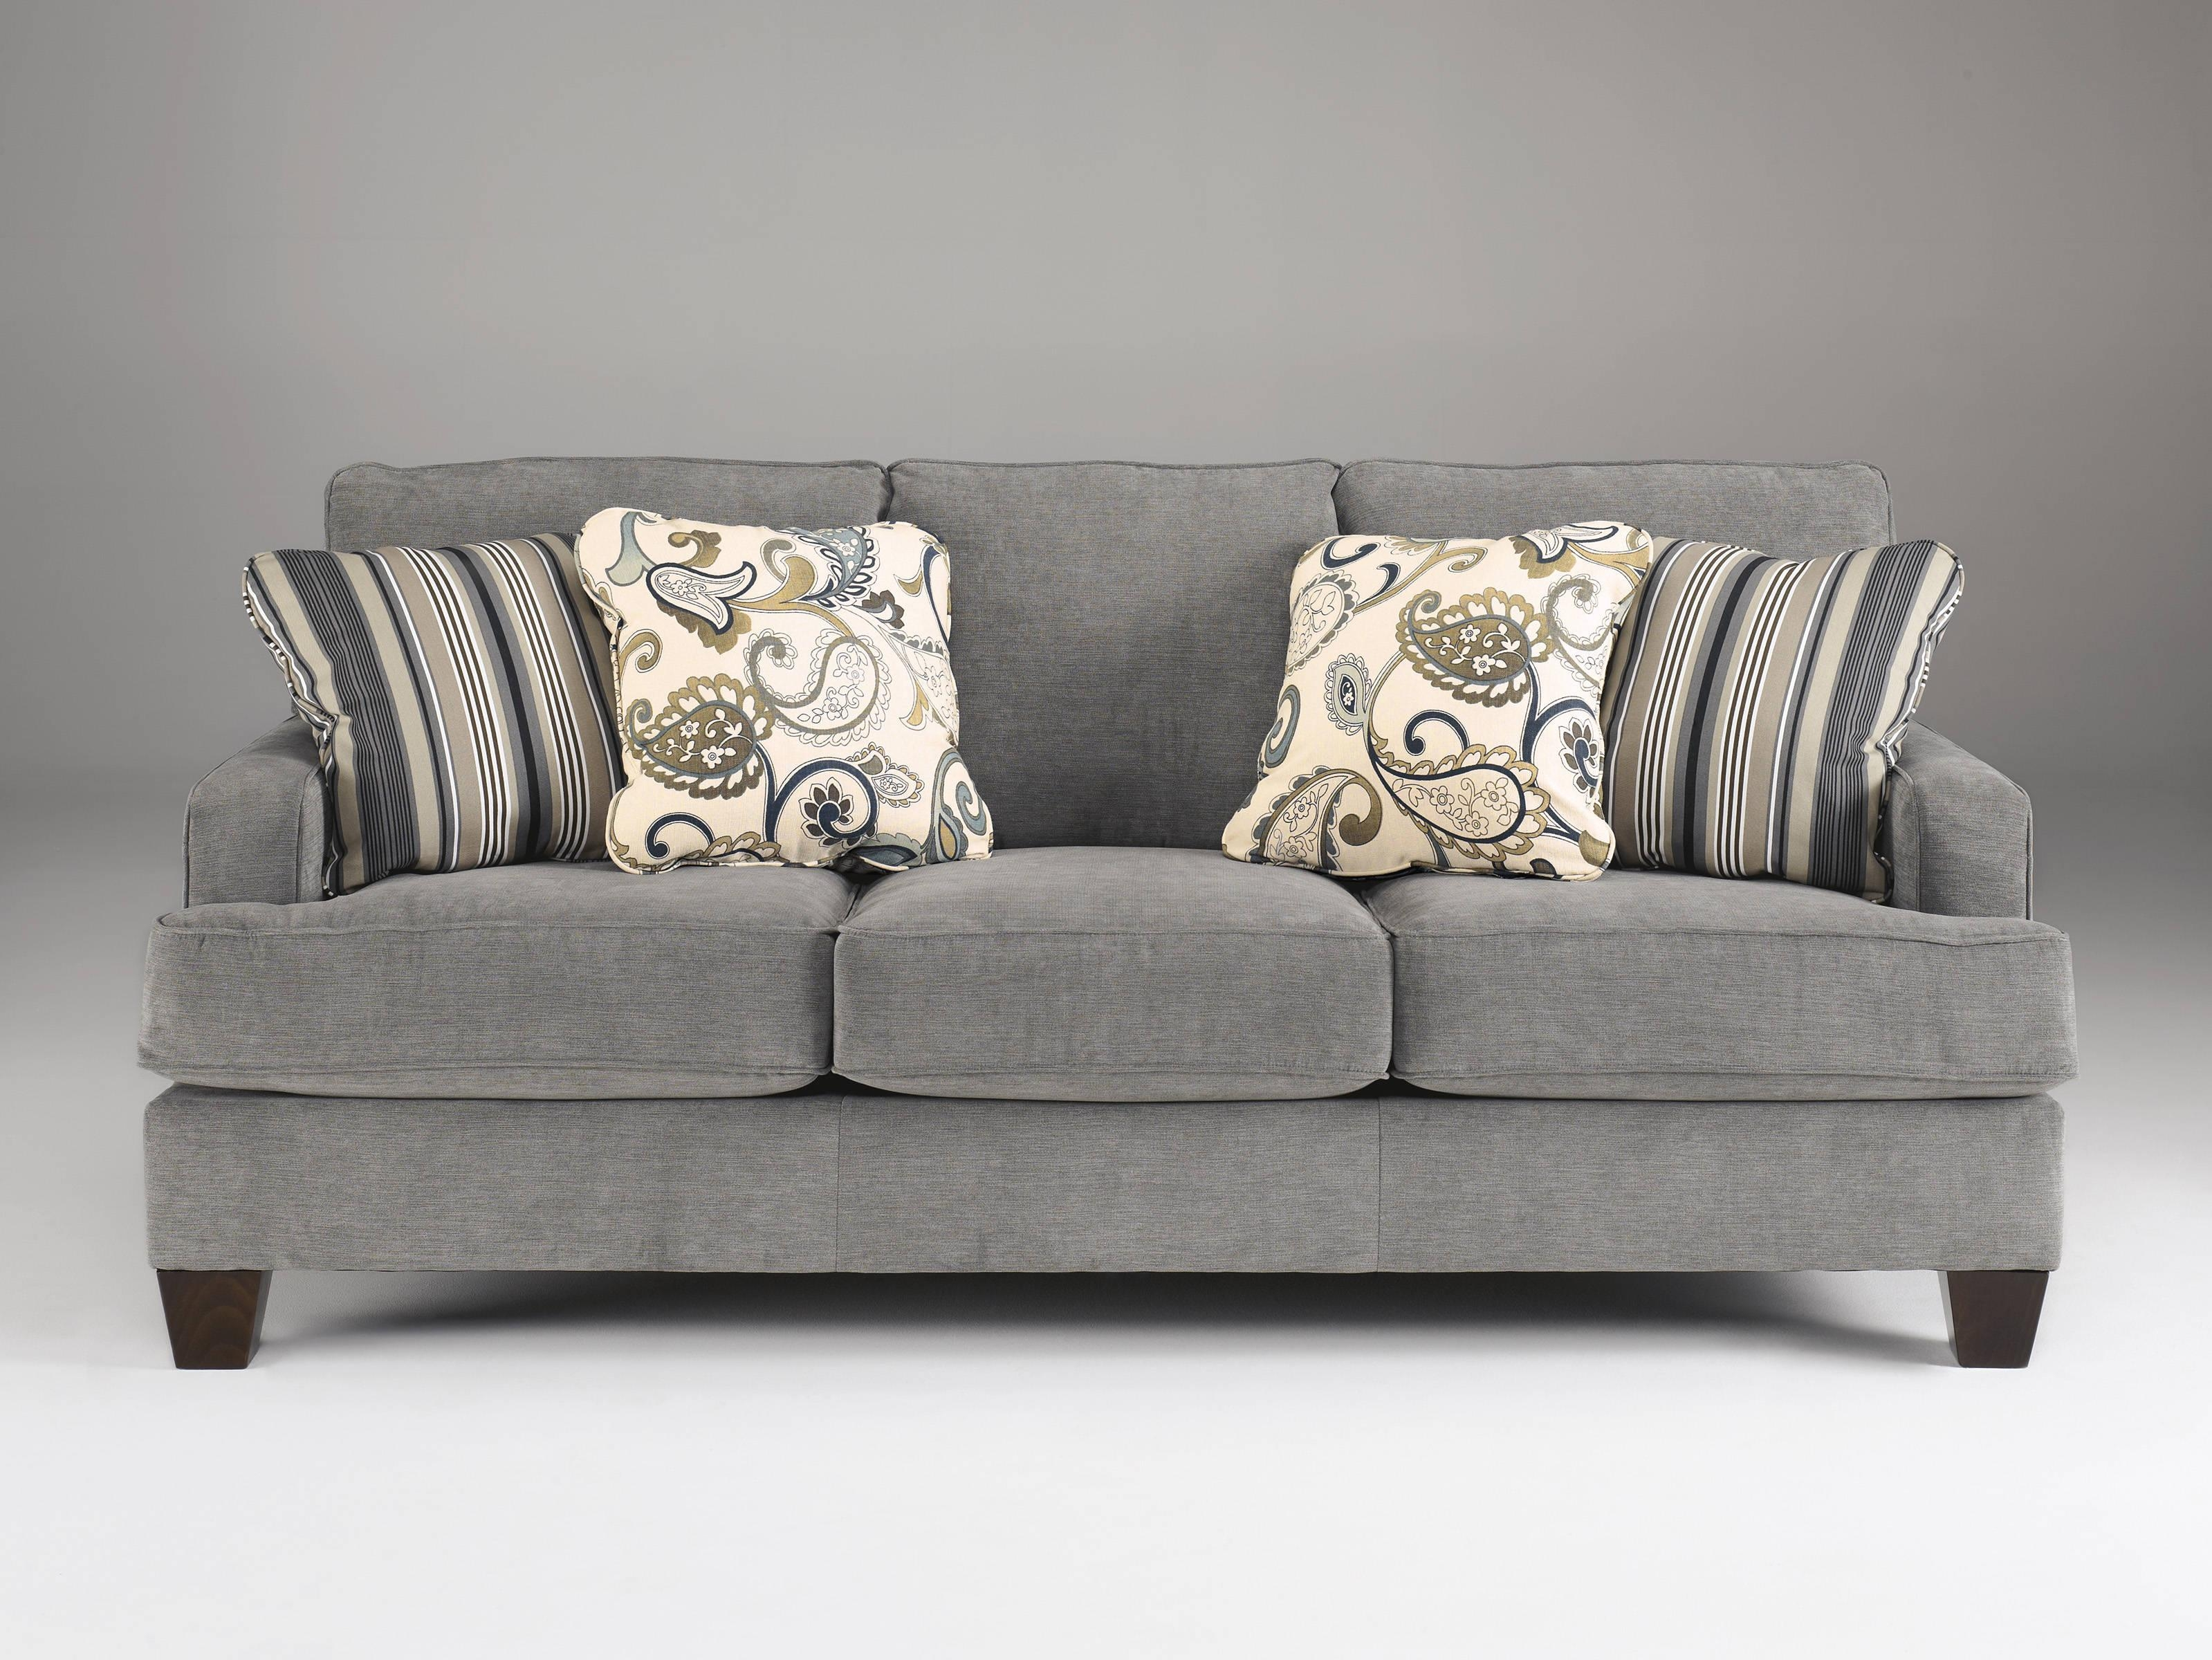 Yvette Casual Steel Gray Fabric Cushion Back Sofa | Living Rooms Pertaining To Casual Sofas And Chairs (Image 21 of 21)